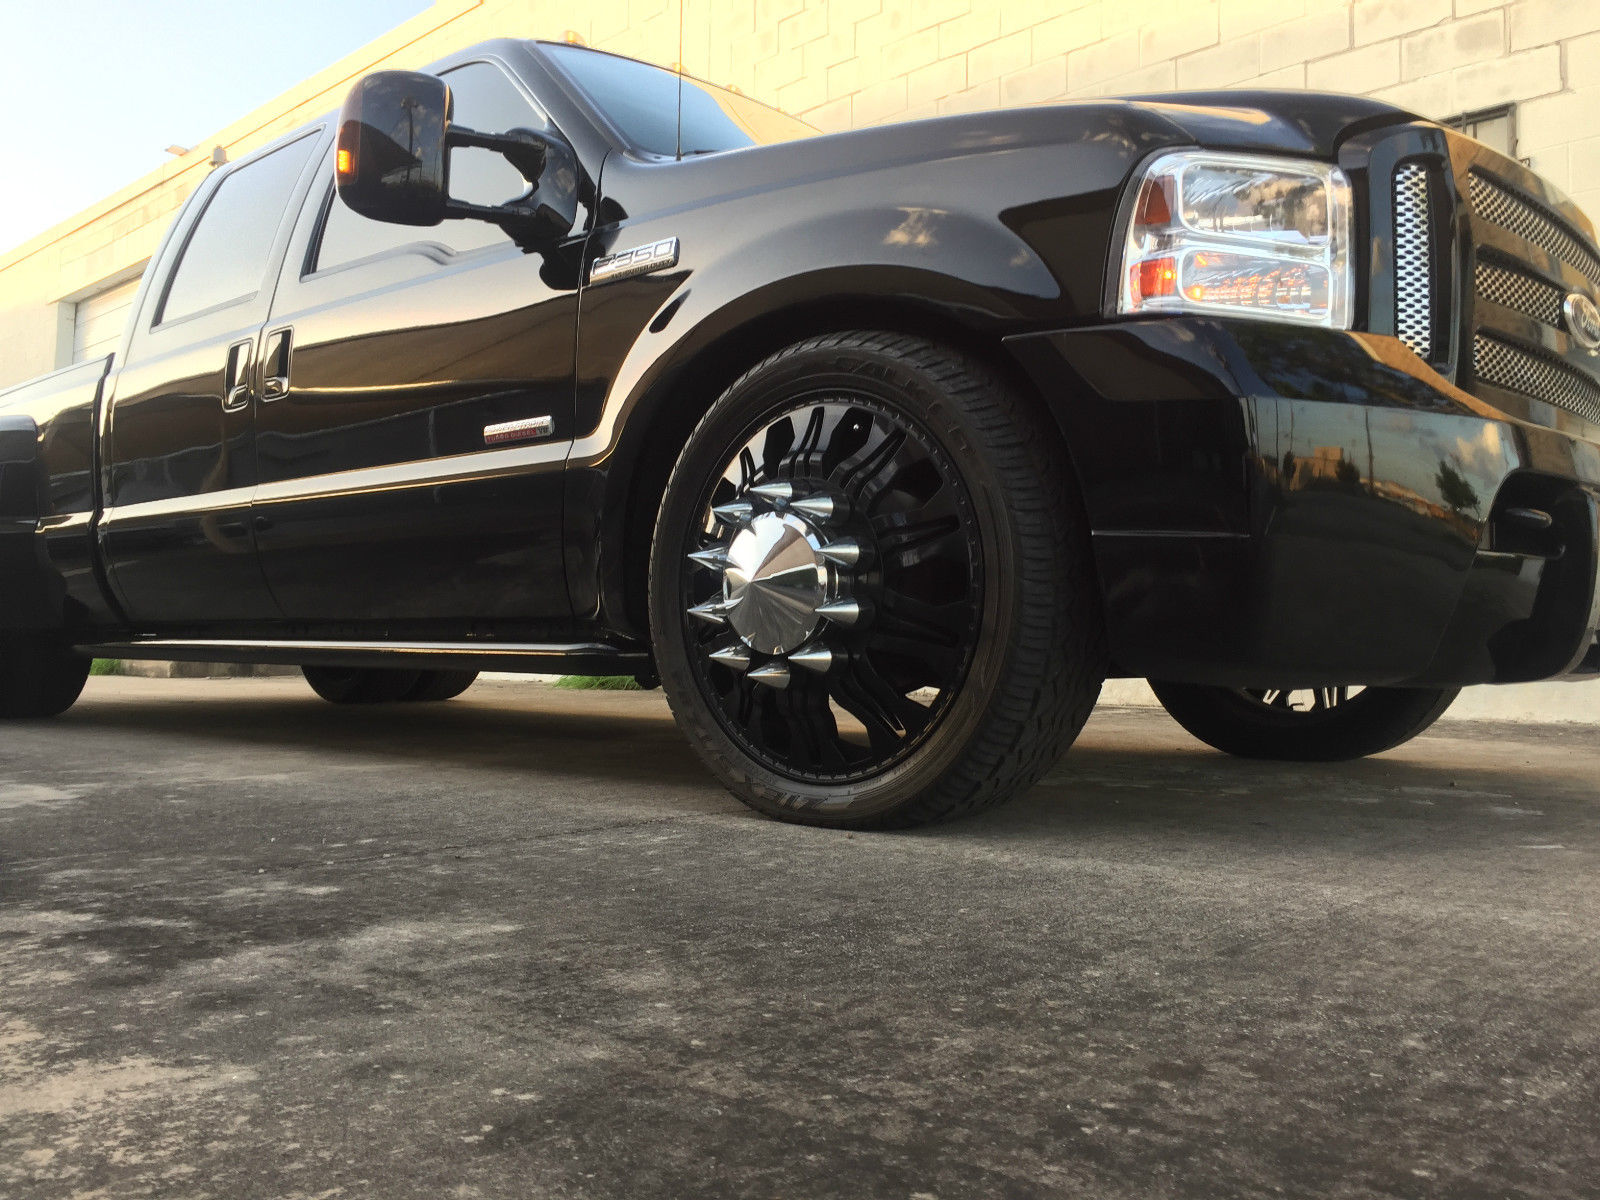 Ford Powerstroke For Sale >> BangShift.com Daily Dually Fix: This Bagged And Suicide Doored Ford F350 Powerstroke Crew Cab Is ...